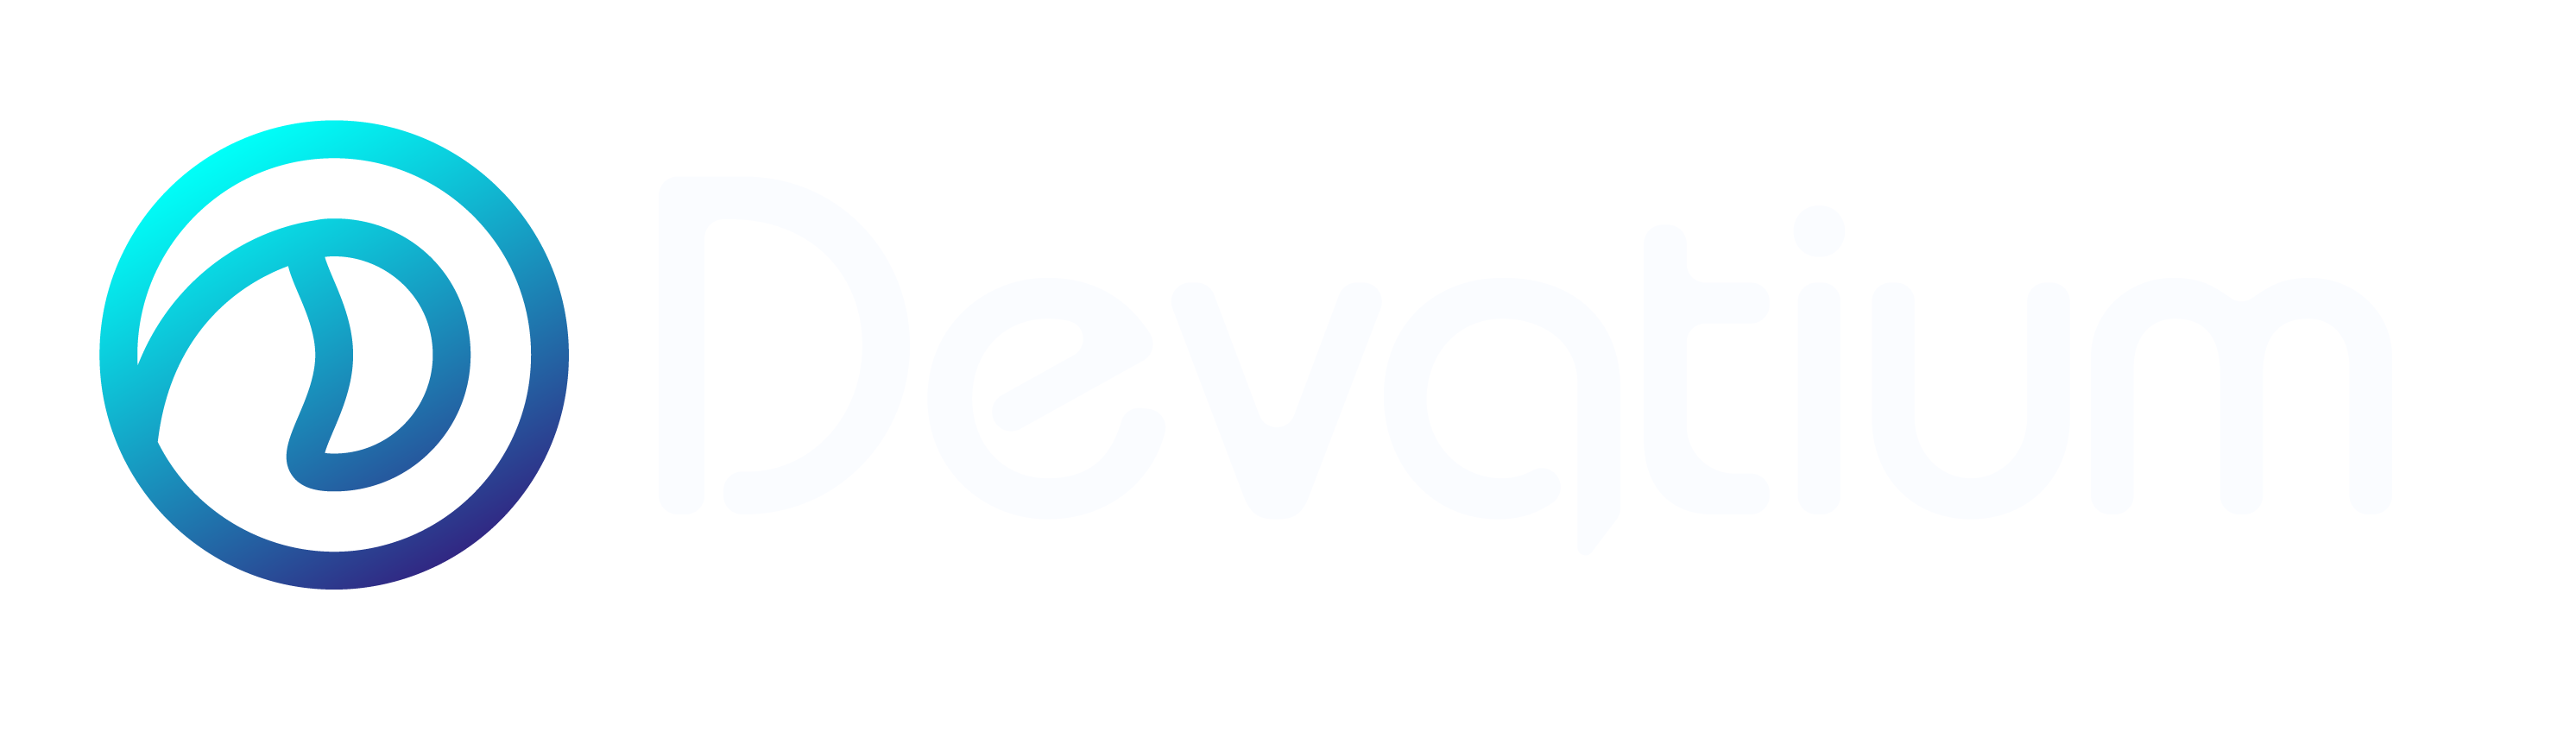 Devatium Logo - white version, devatium.com